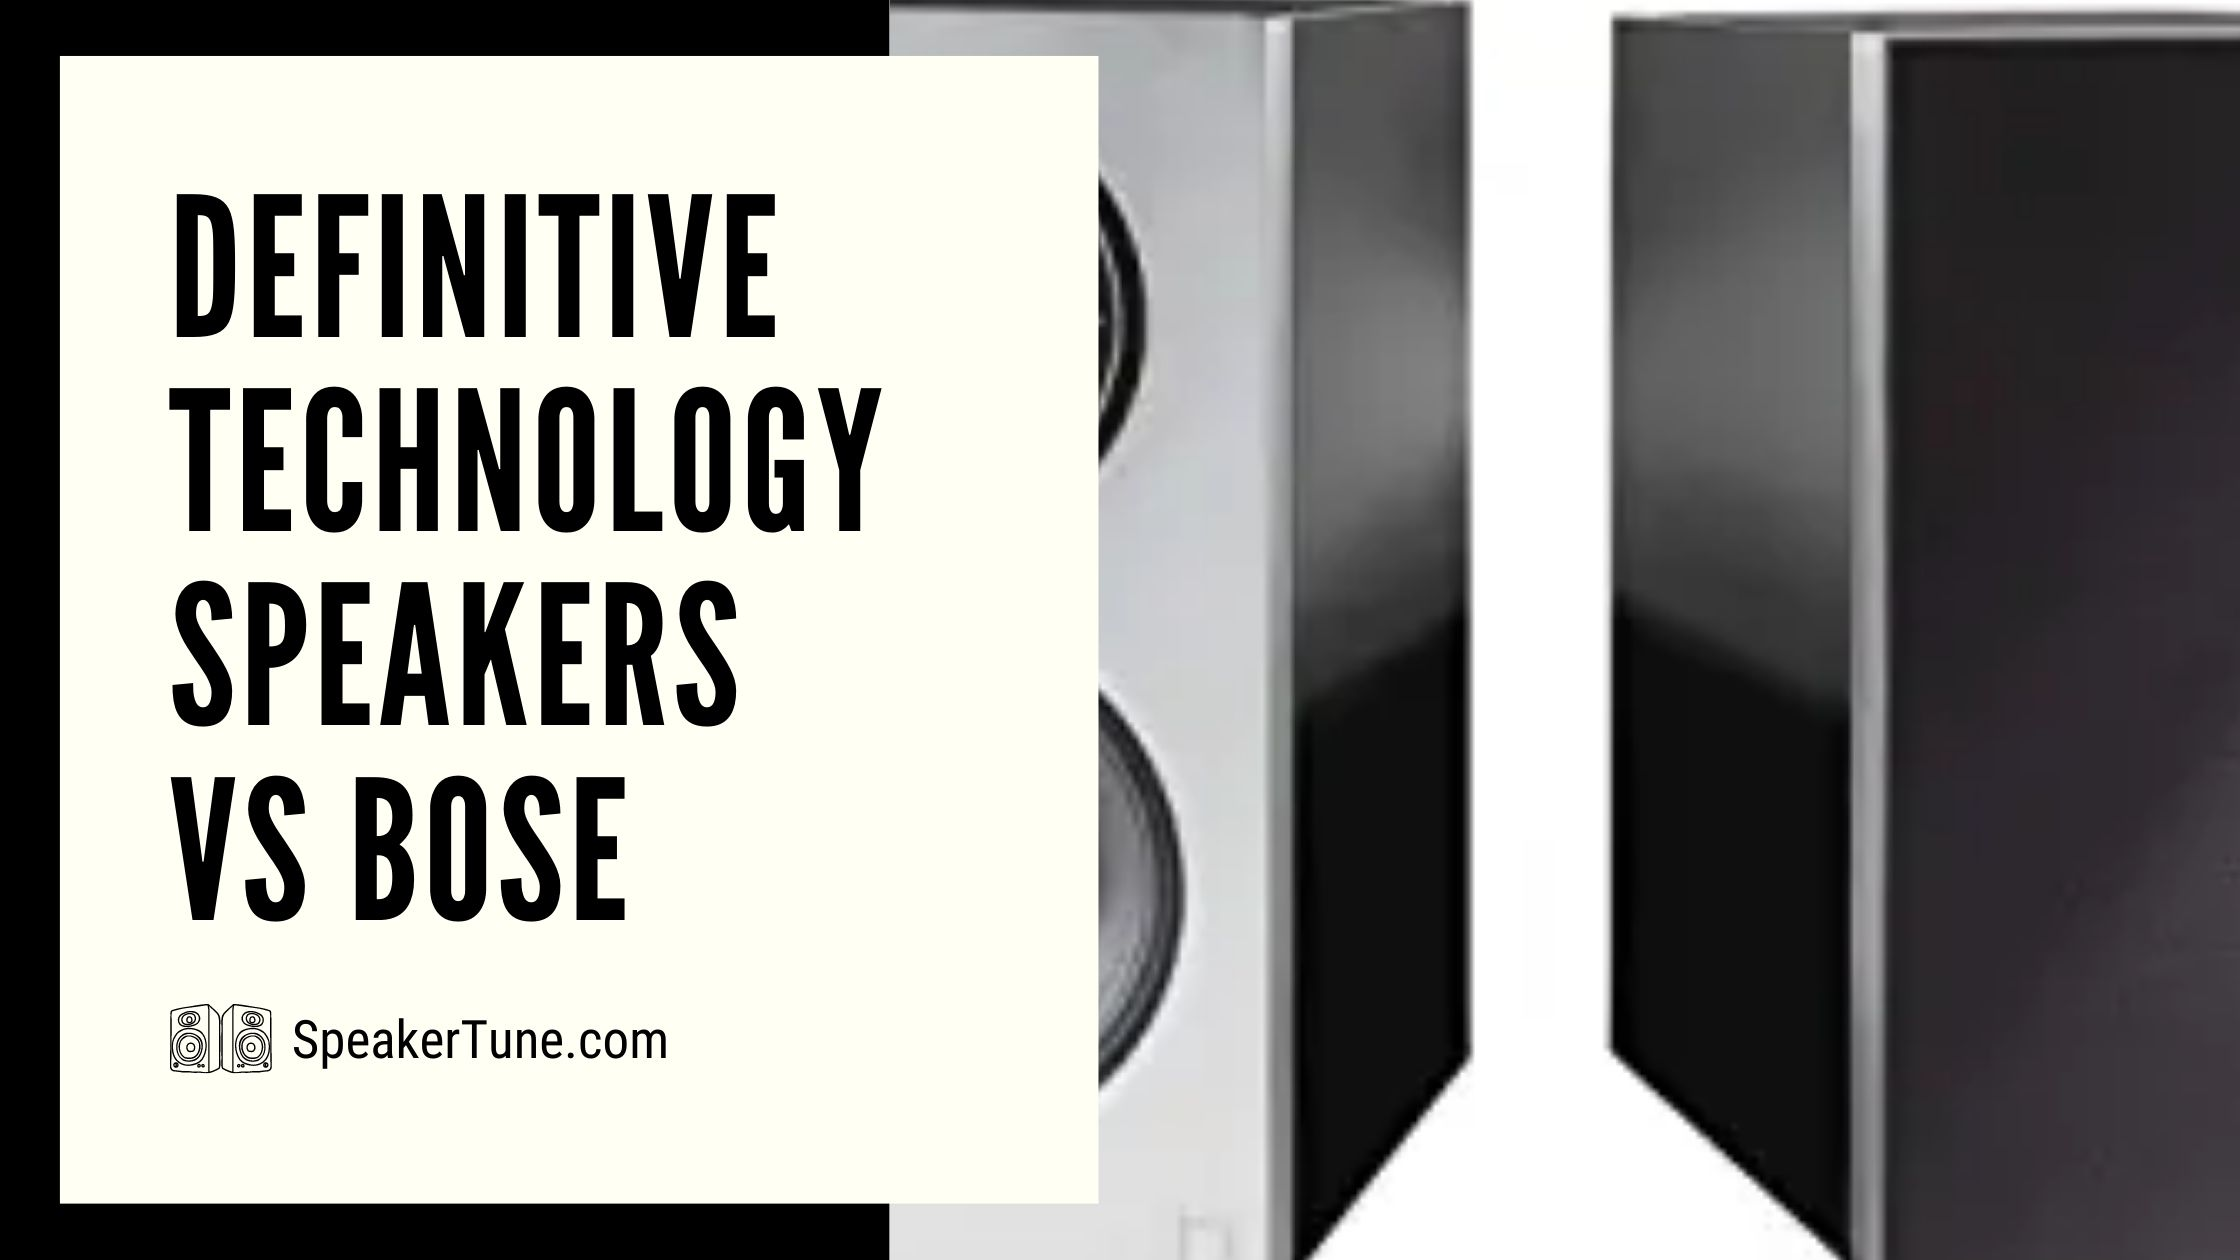 ST-definitive-technology-speakers-vs-bose